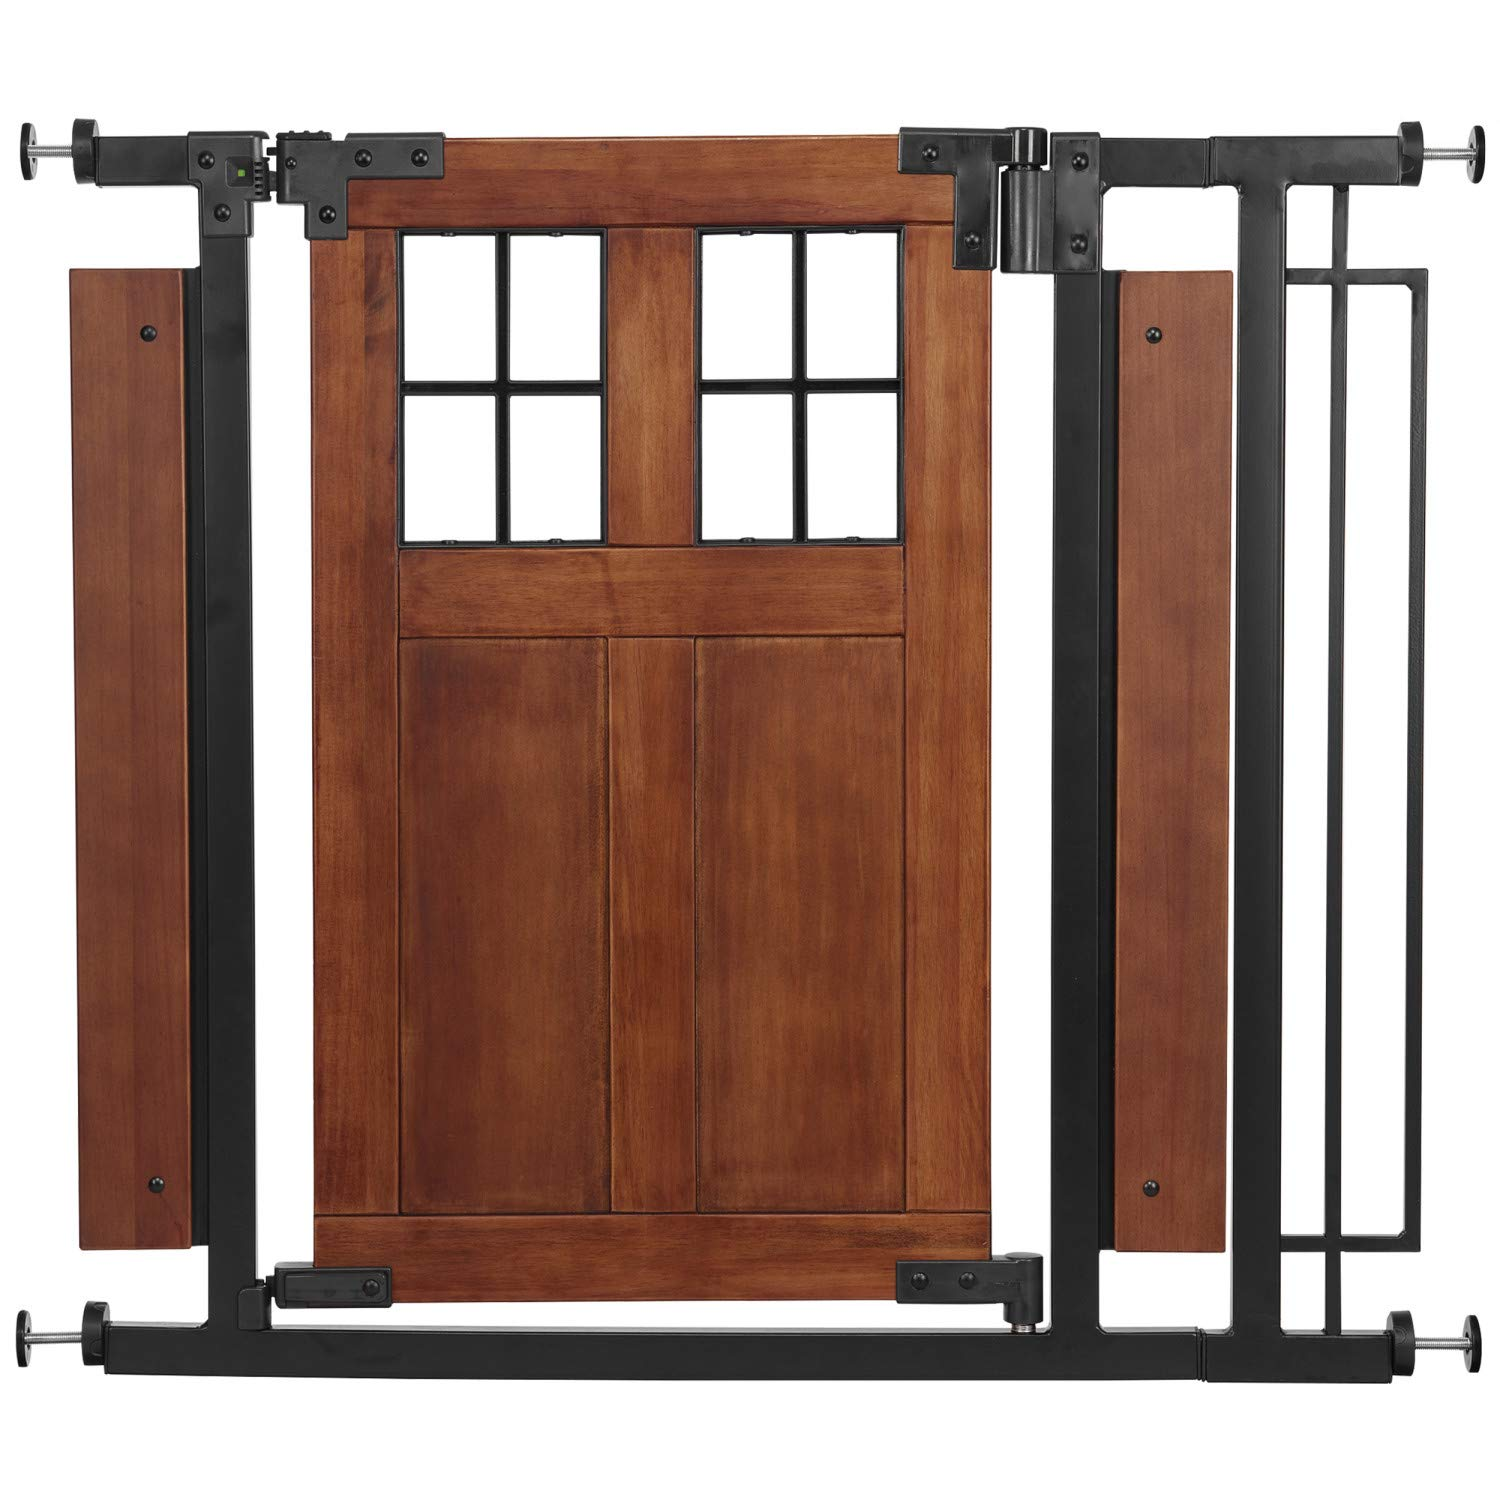 Evenflo Barn Door Walk-Thru Gate (Farmhouse Collection) by Evenflo